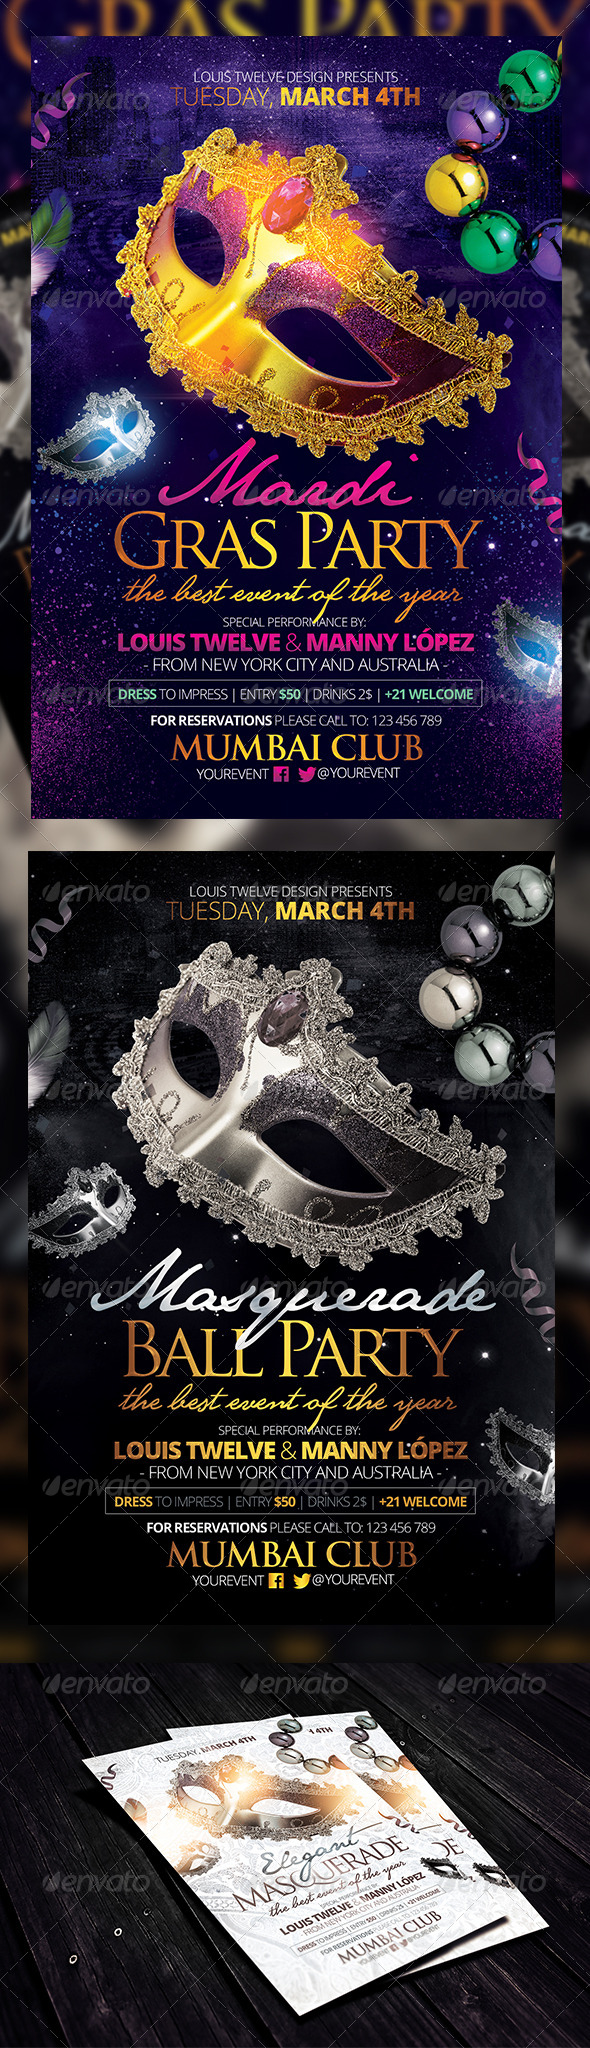 Masquerade Ball / Mardi Gras Party Flyers Template   Clubs U0026 Parties Events  Ball Ticket Template